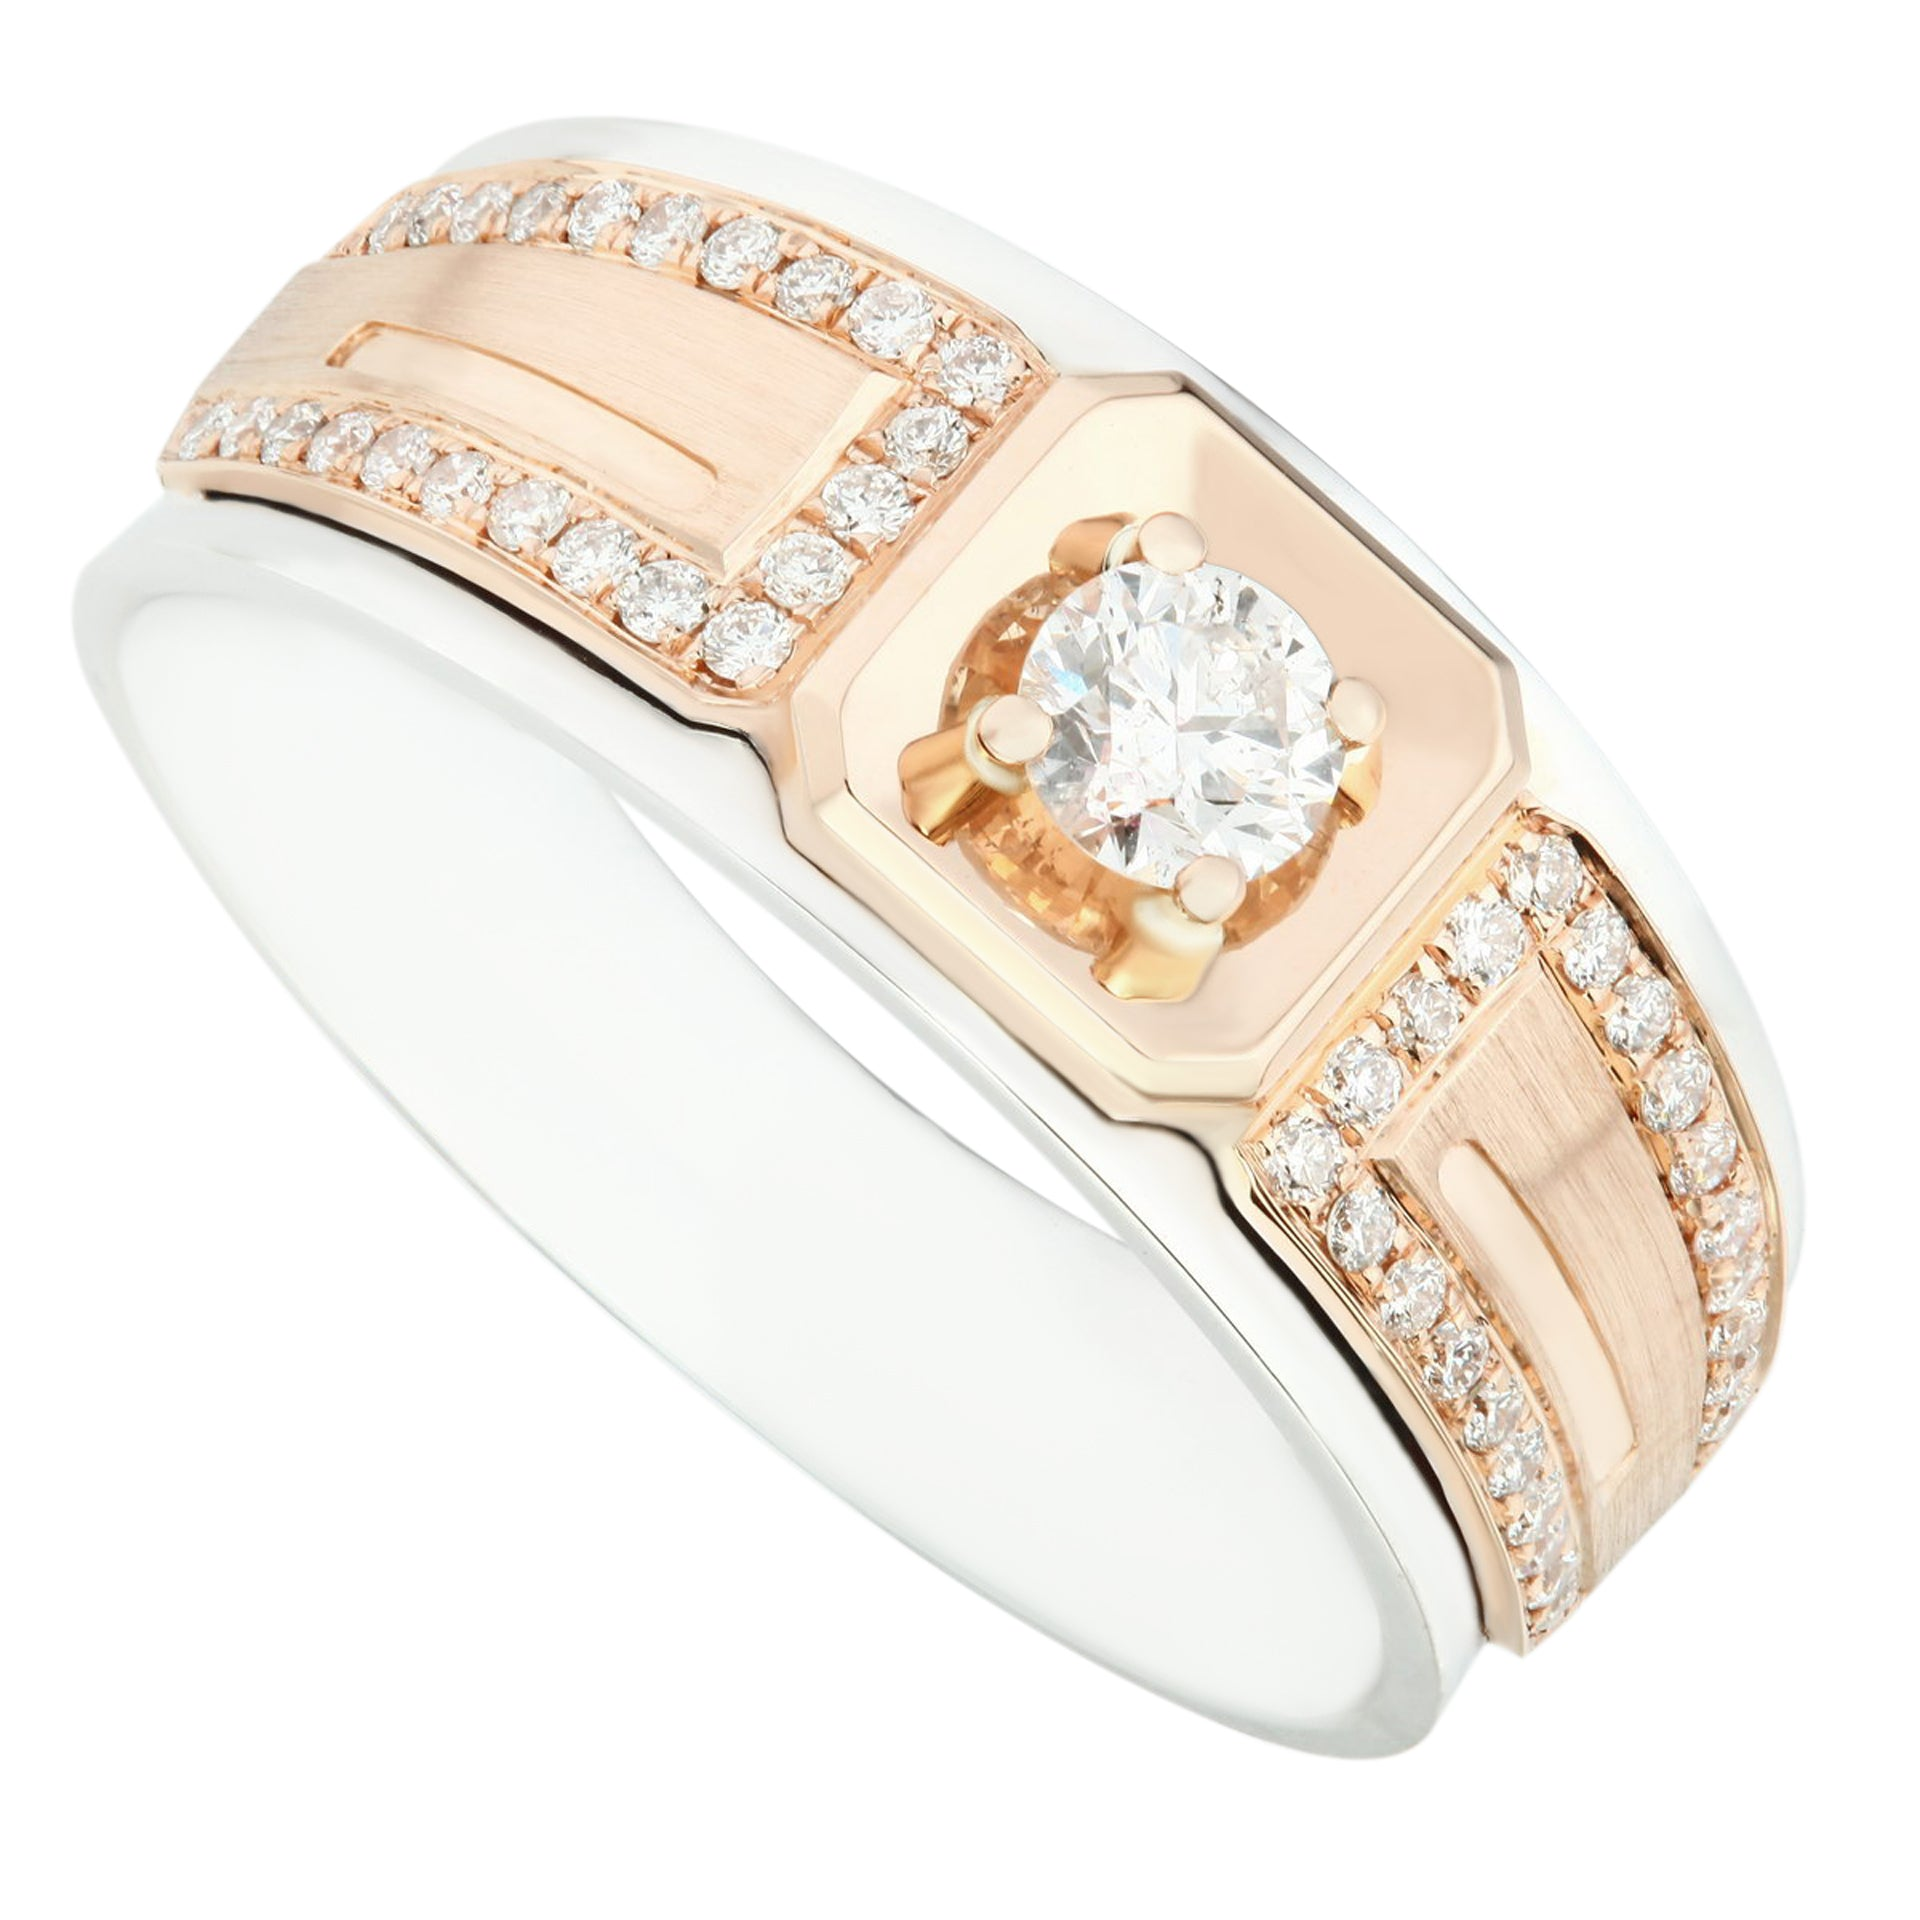 Distinctive Two Tone Gold & Diamond Men's Ring - KARP Jewellery